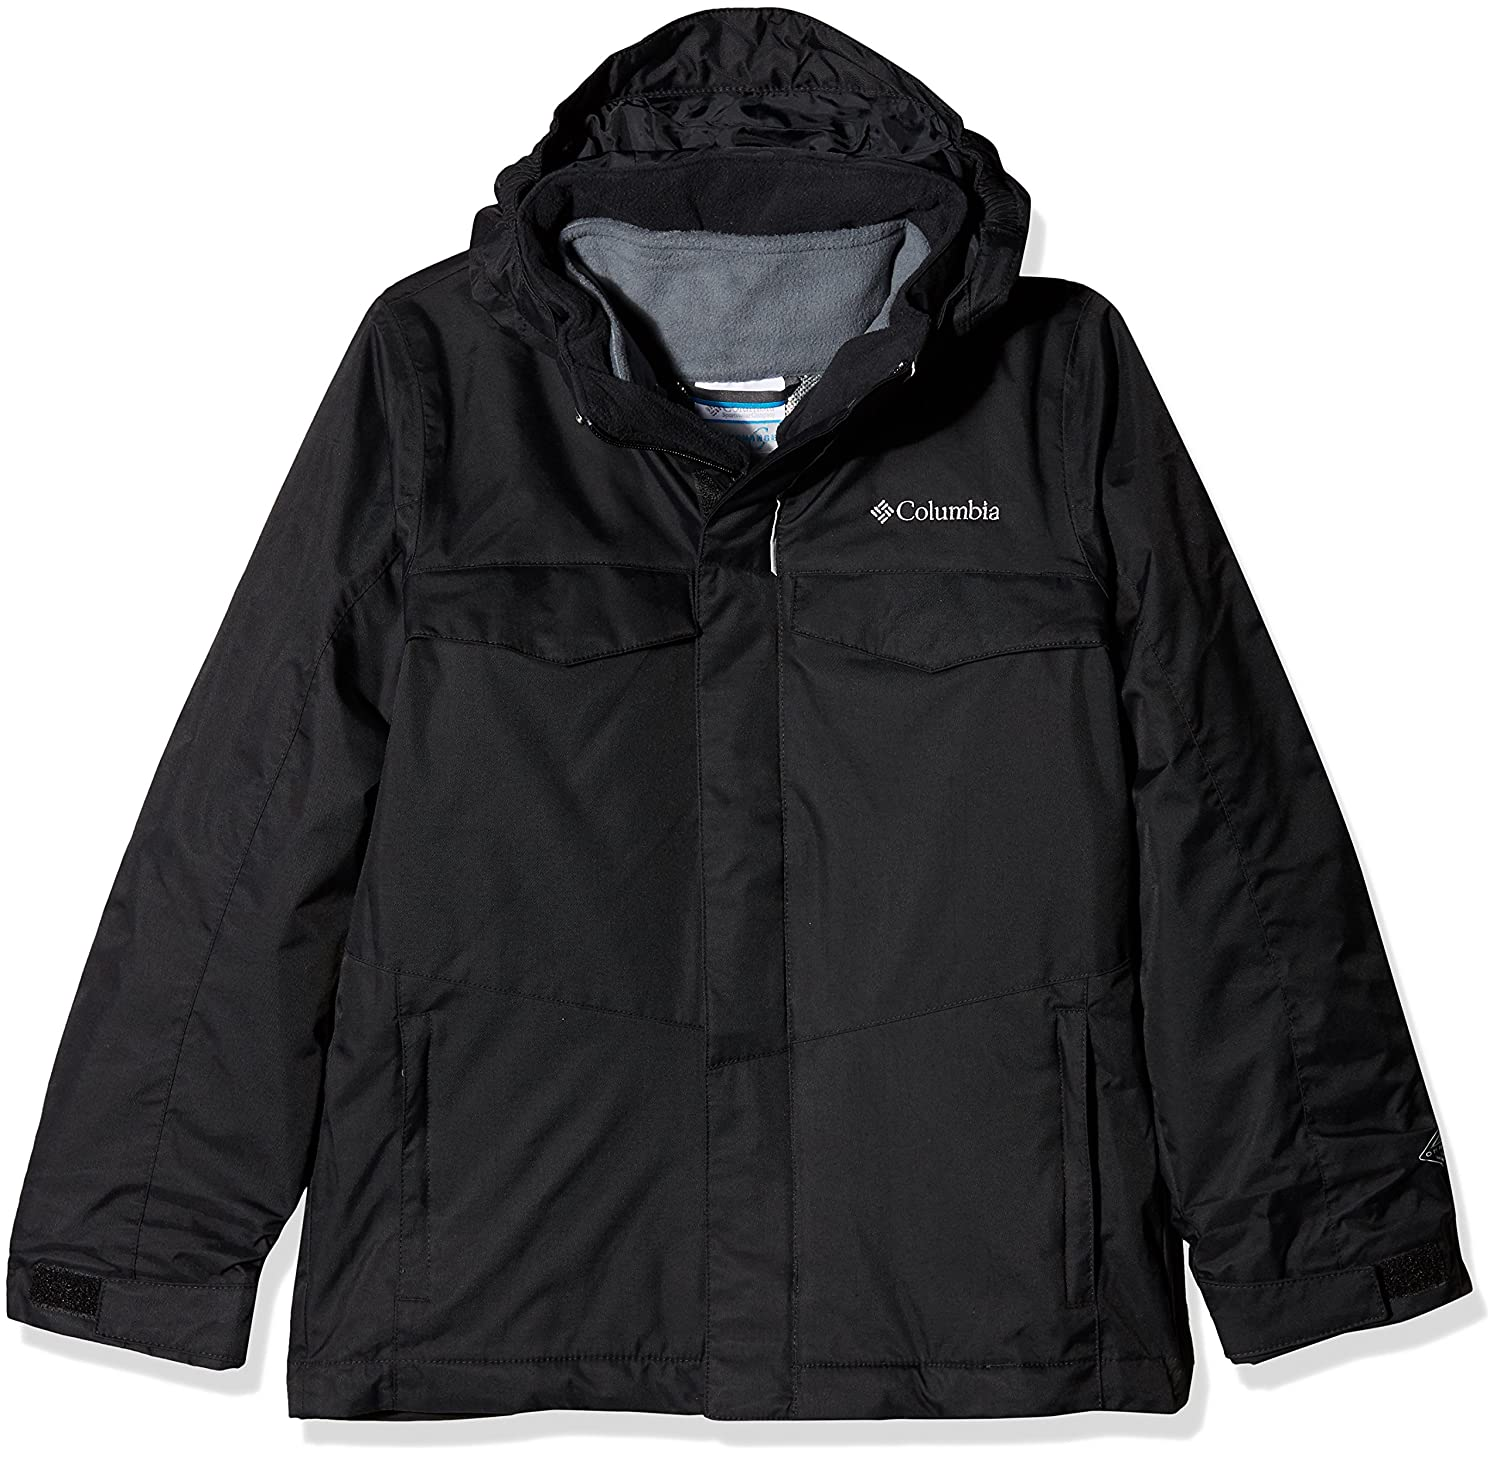 Columbia Boys' Bugaboo Interchange Jacket Columbia (Sporting Goods) SB7013-691